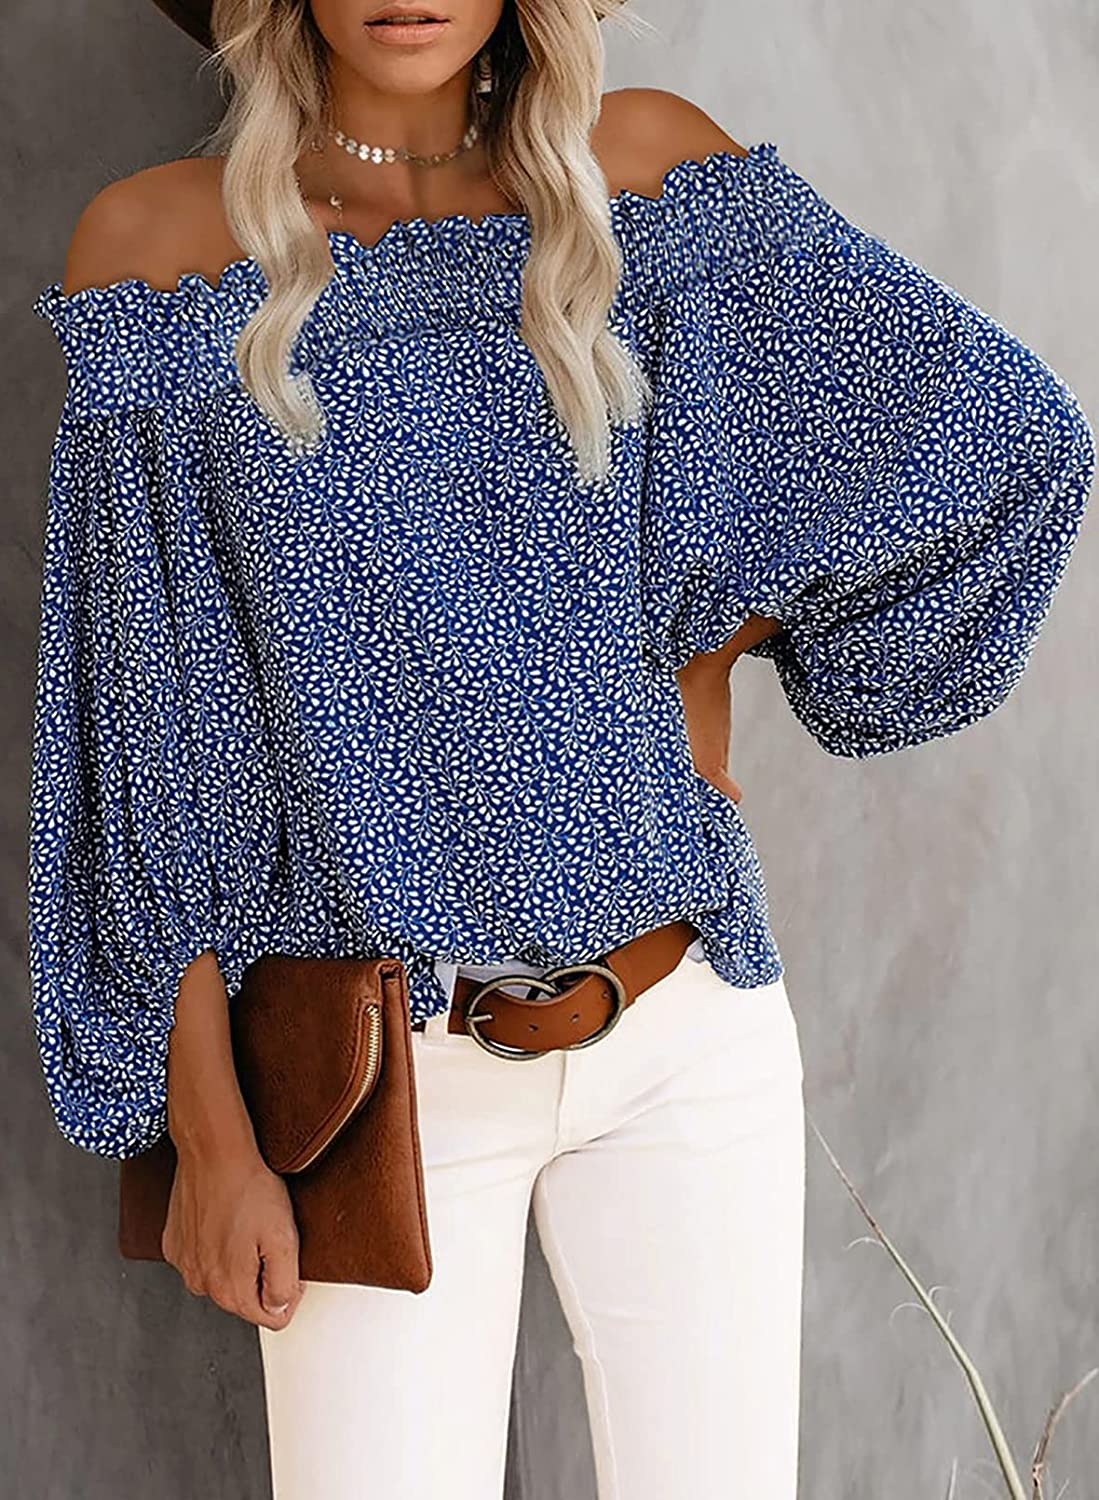 Happy Sailed Womens Off Shoulder Blouses Floral Printed Lantern Sleeve Ruffle Shirts Tops S-2XL